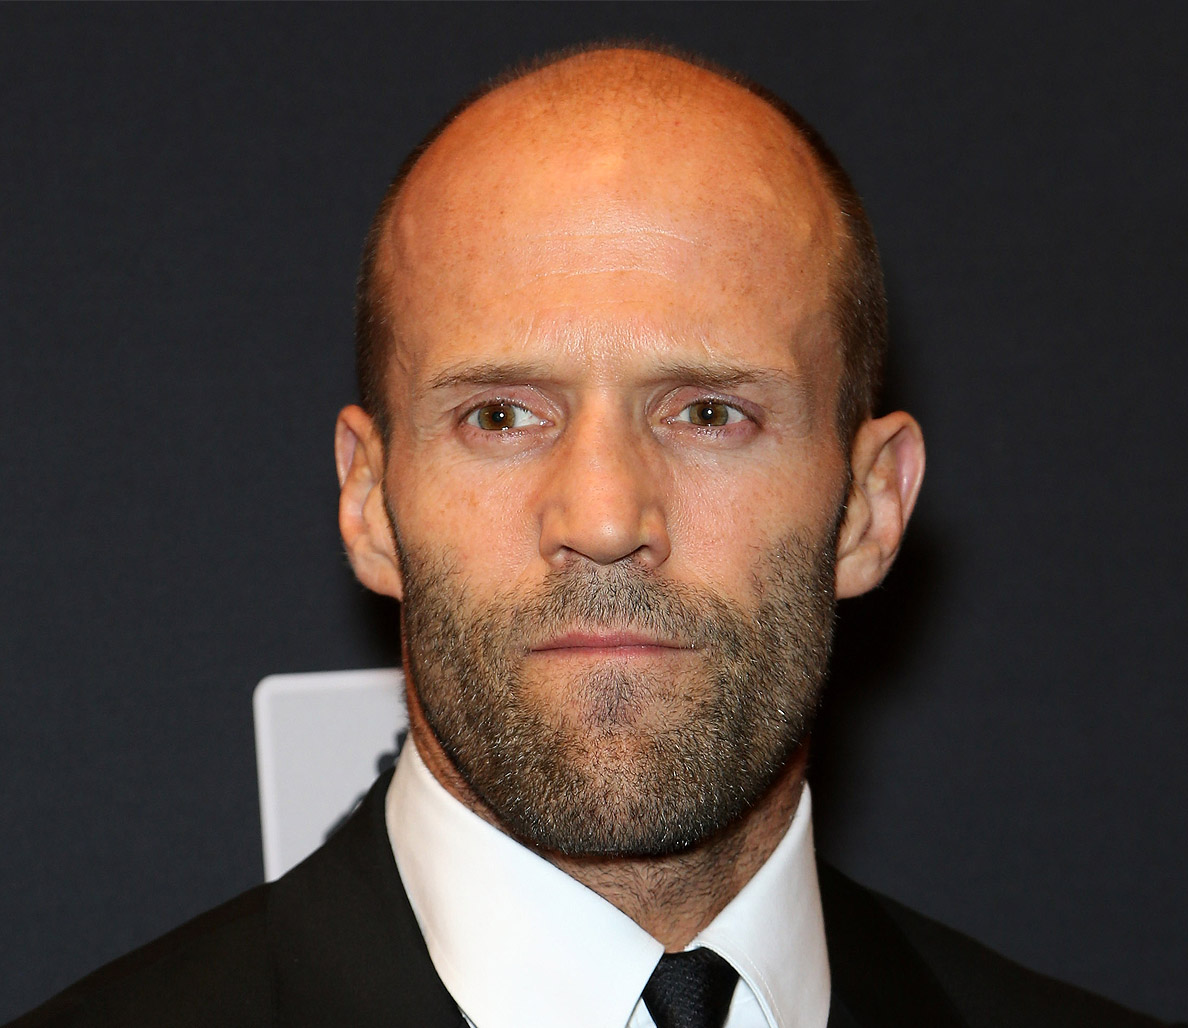 Photos Jason Statham nudes (51 foto and video), Topless, Leaked, Boobs, legs 2006